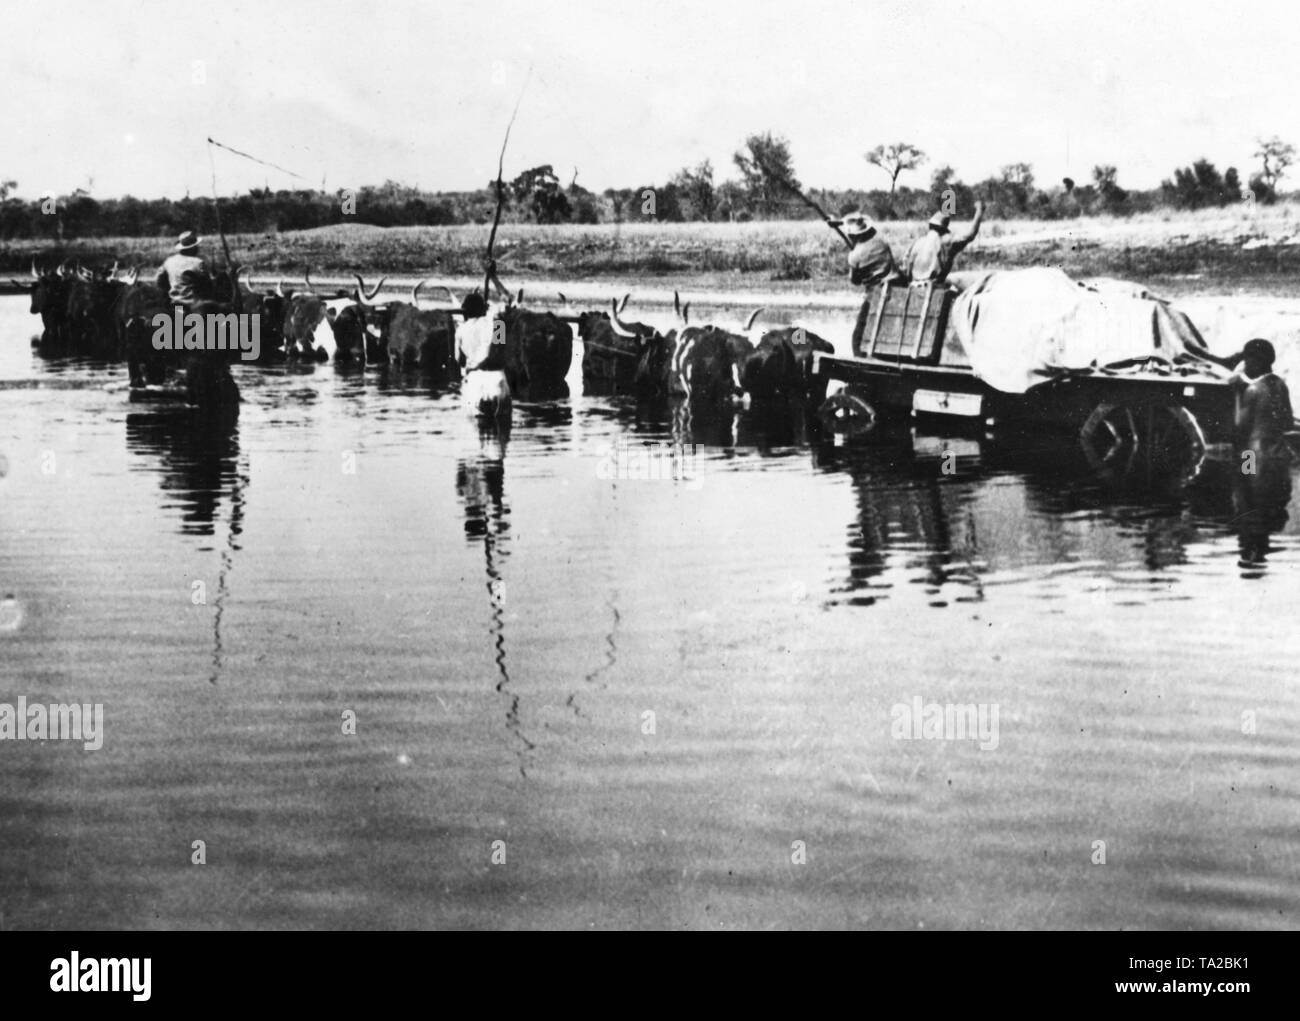 German farmers in the former German colony of German South-West Africa accompany an oxen transport through a river (undated shot). - Stock Image